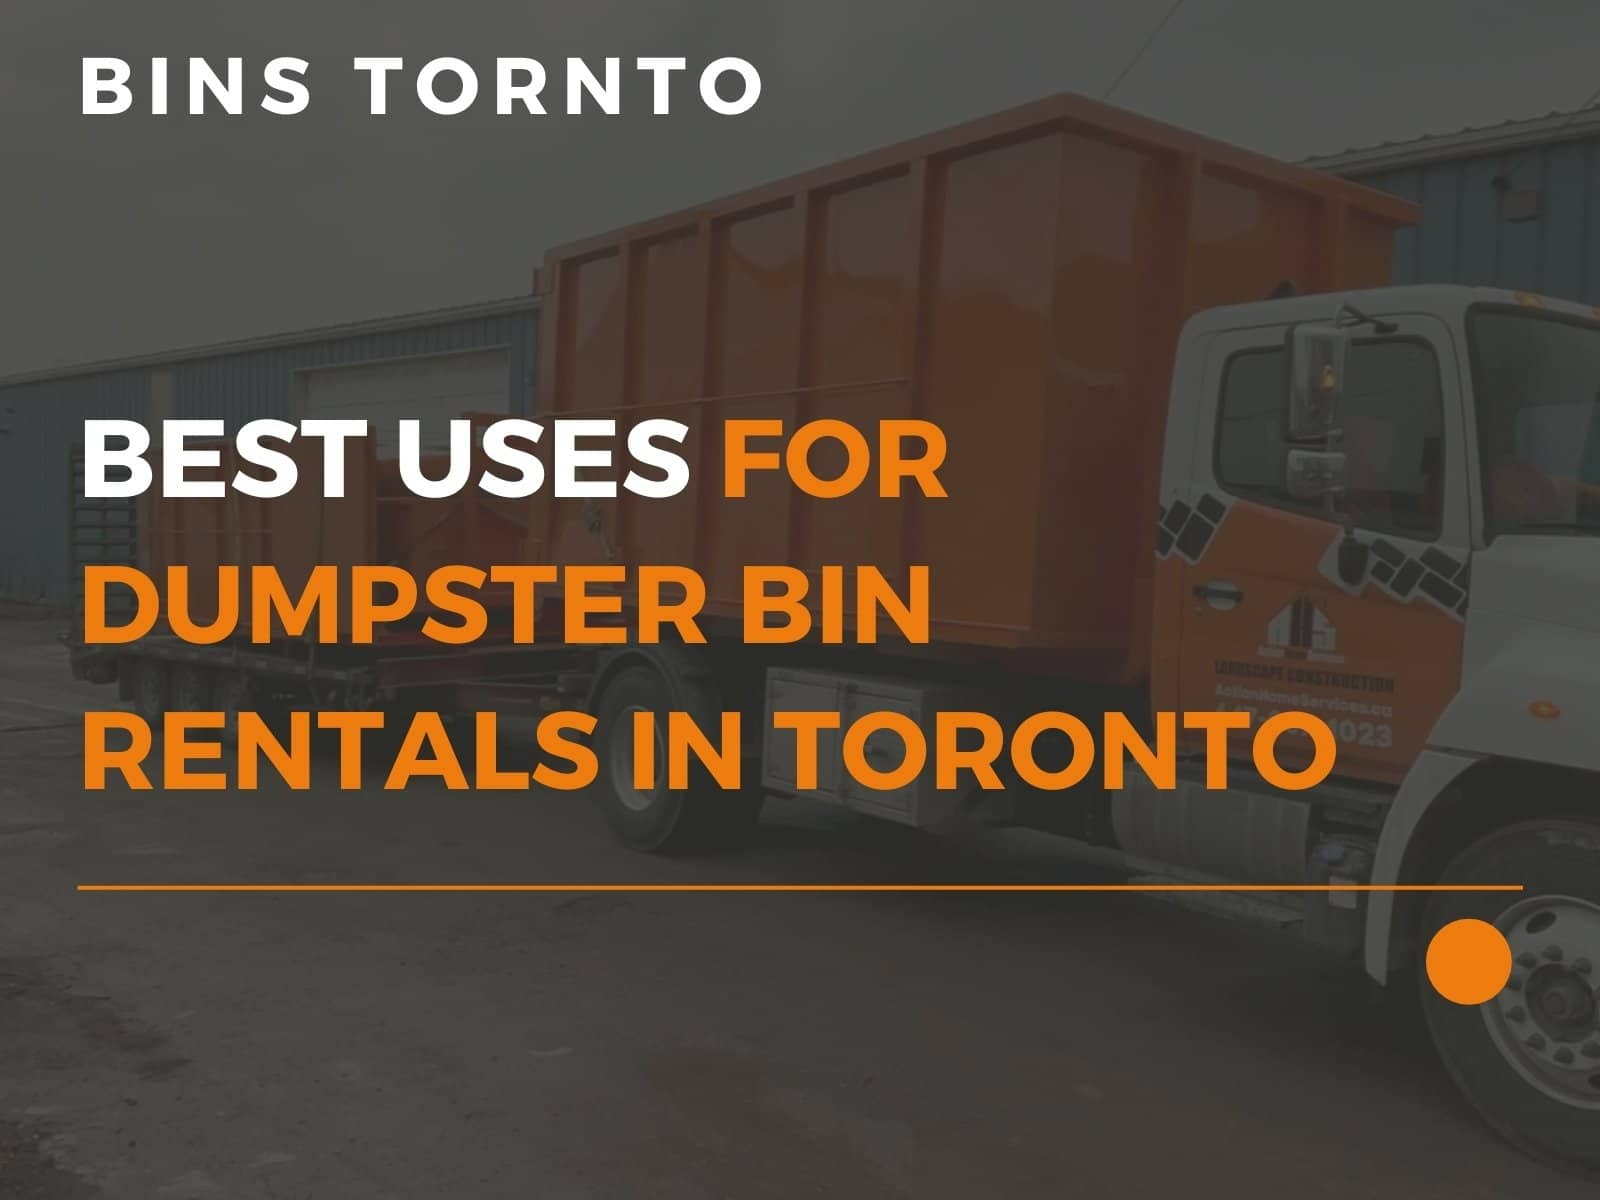 Image depicts the featured image for the blog article Best Uses For Dumpster Bin Rentals in Toronto, which shows a Bins Toronto truck hauling a disposal bin.